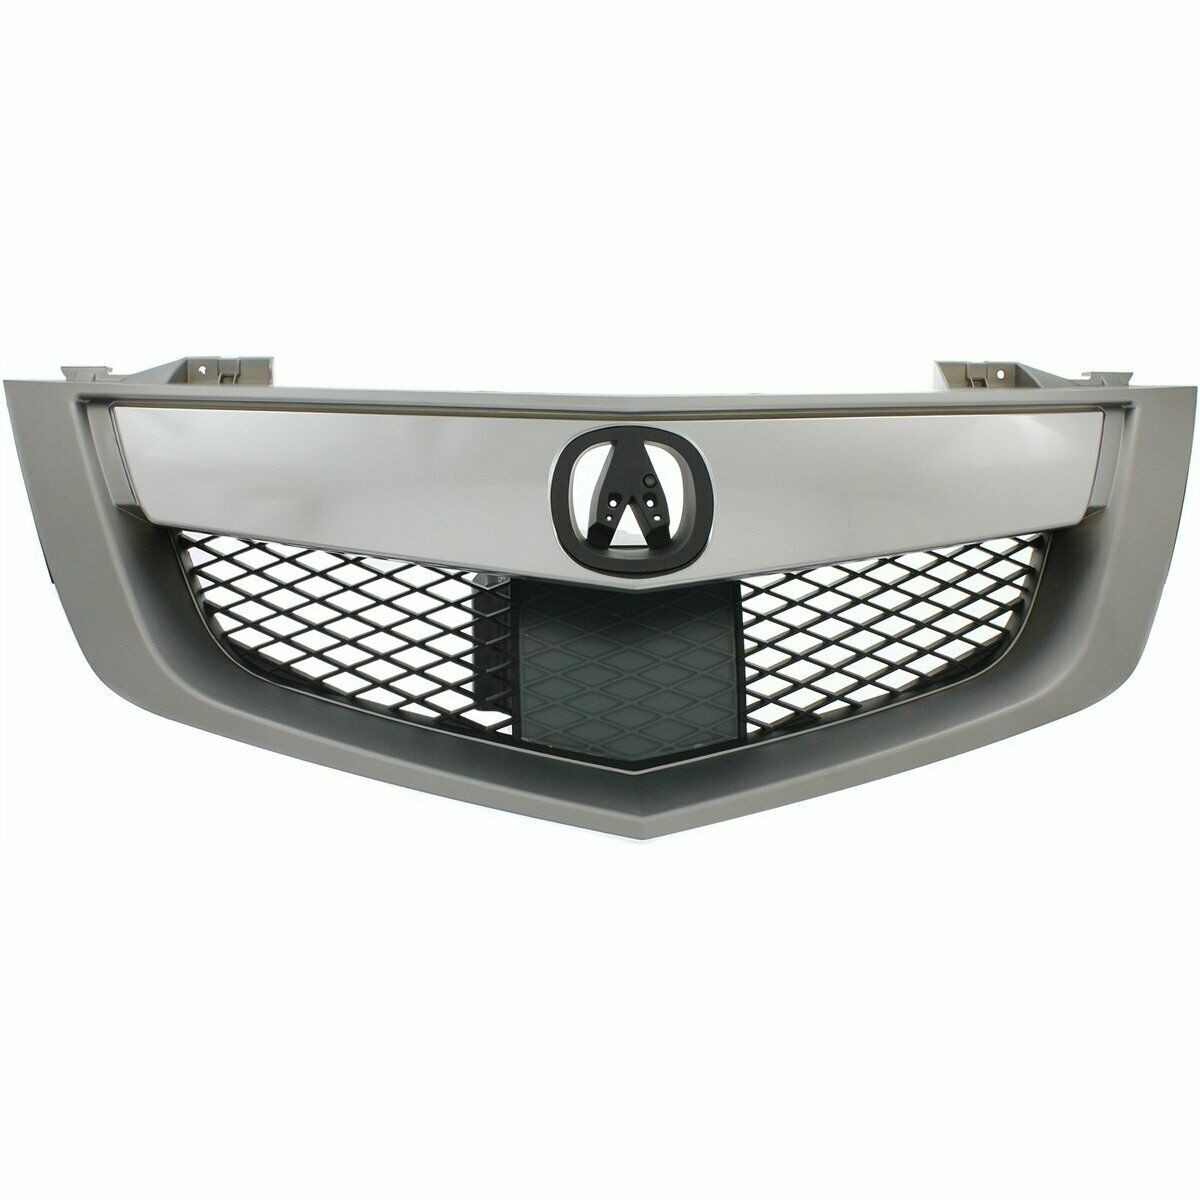 New Grille Made Of Abs Plastic Front For Acura MDX 2010